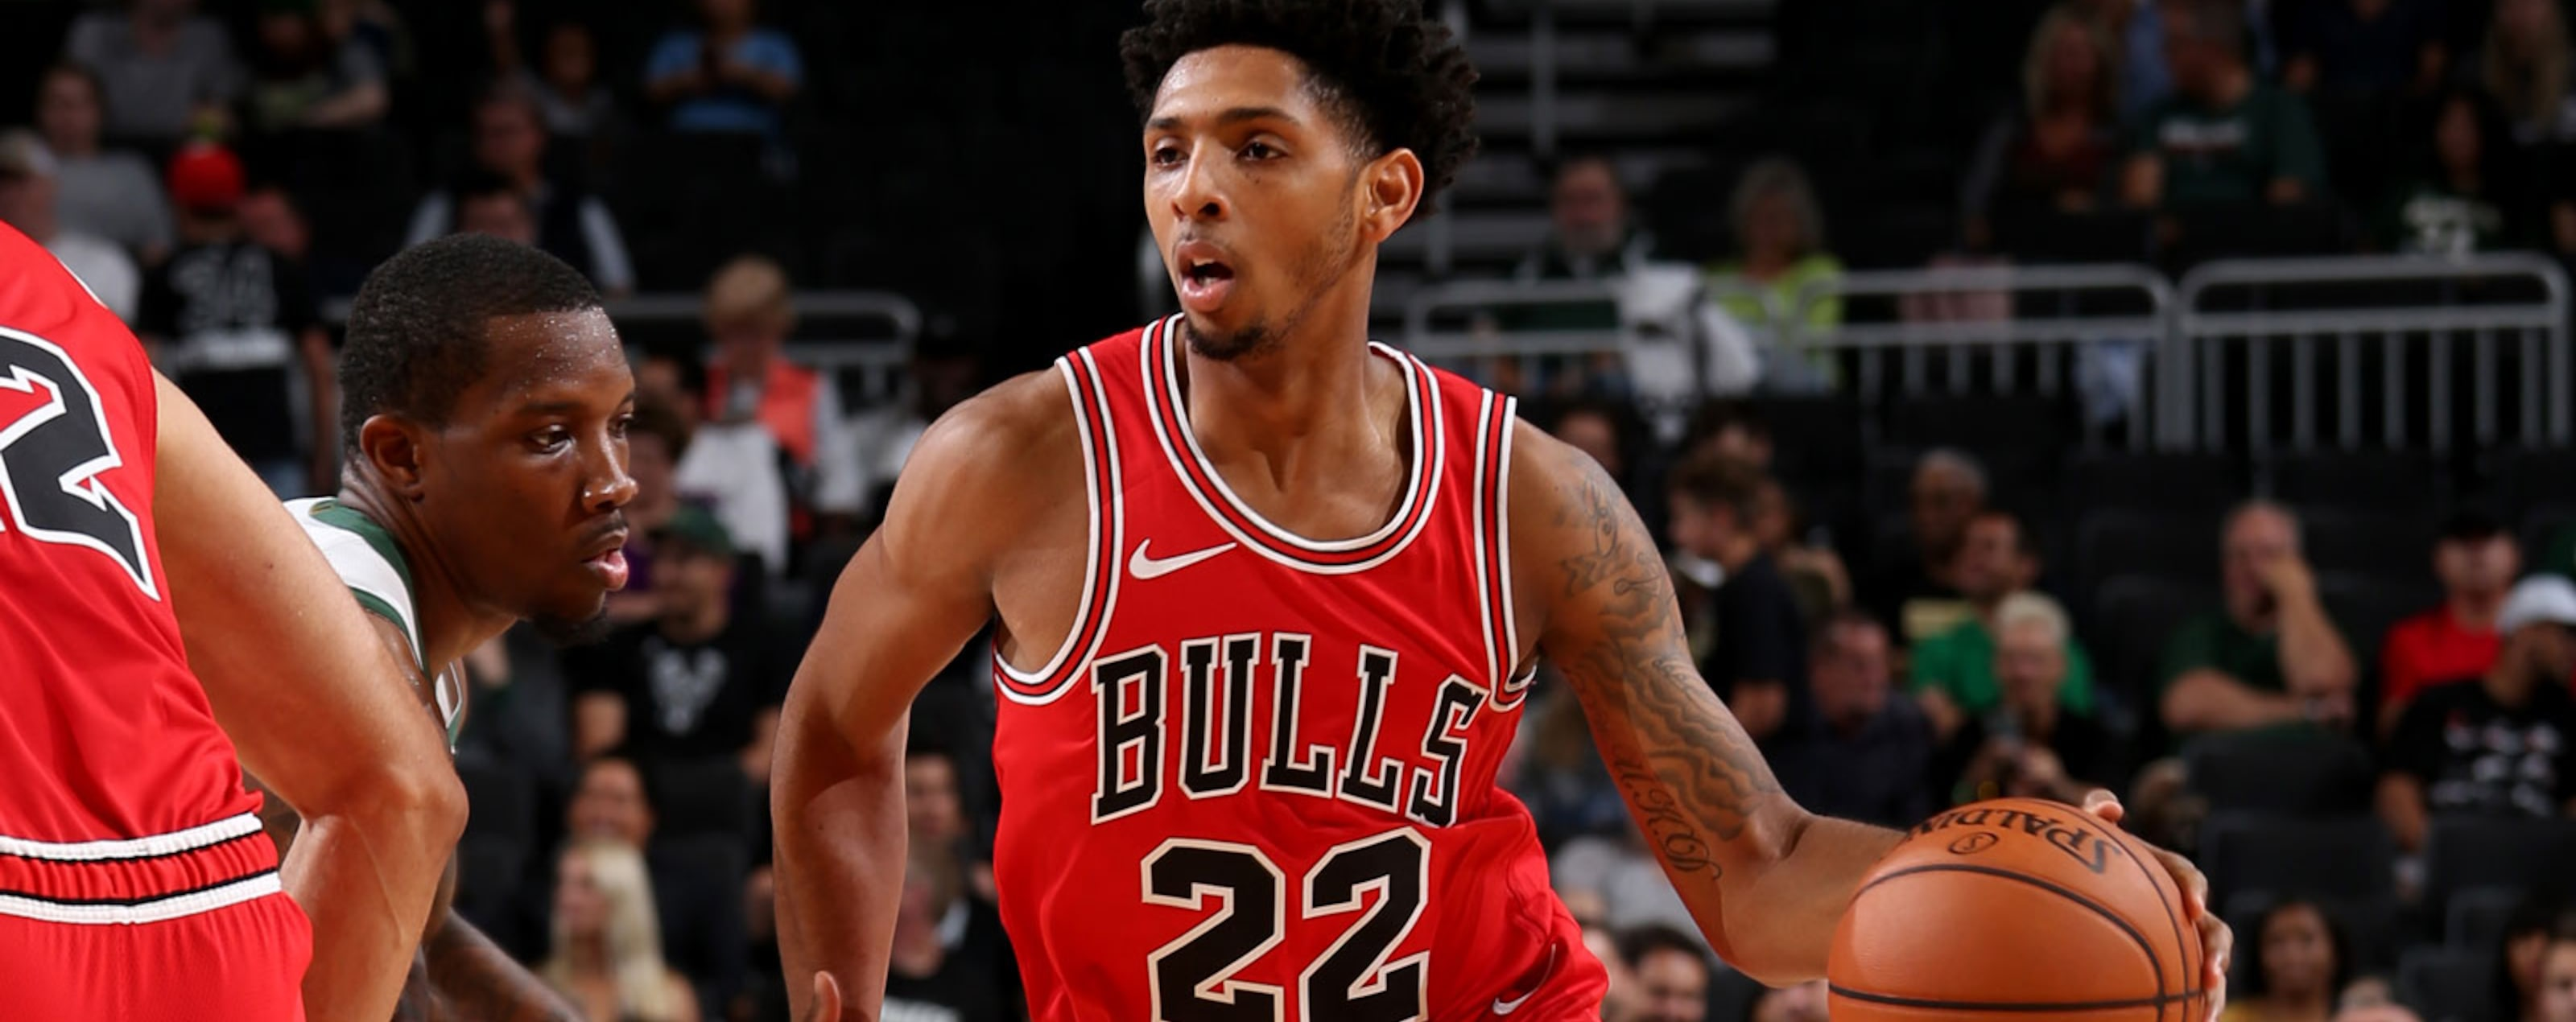 Cameron Payne of the Chicago Bulls dribbles the ball